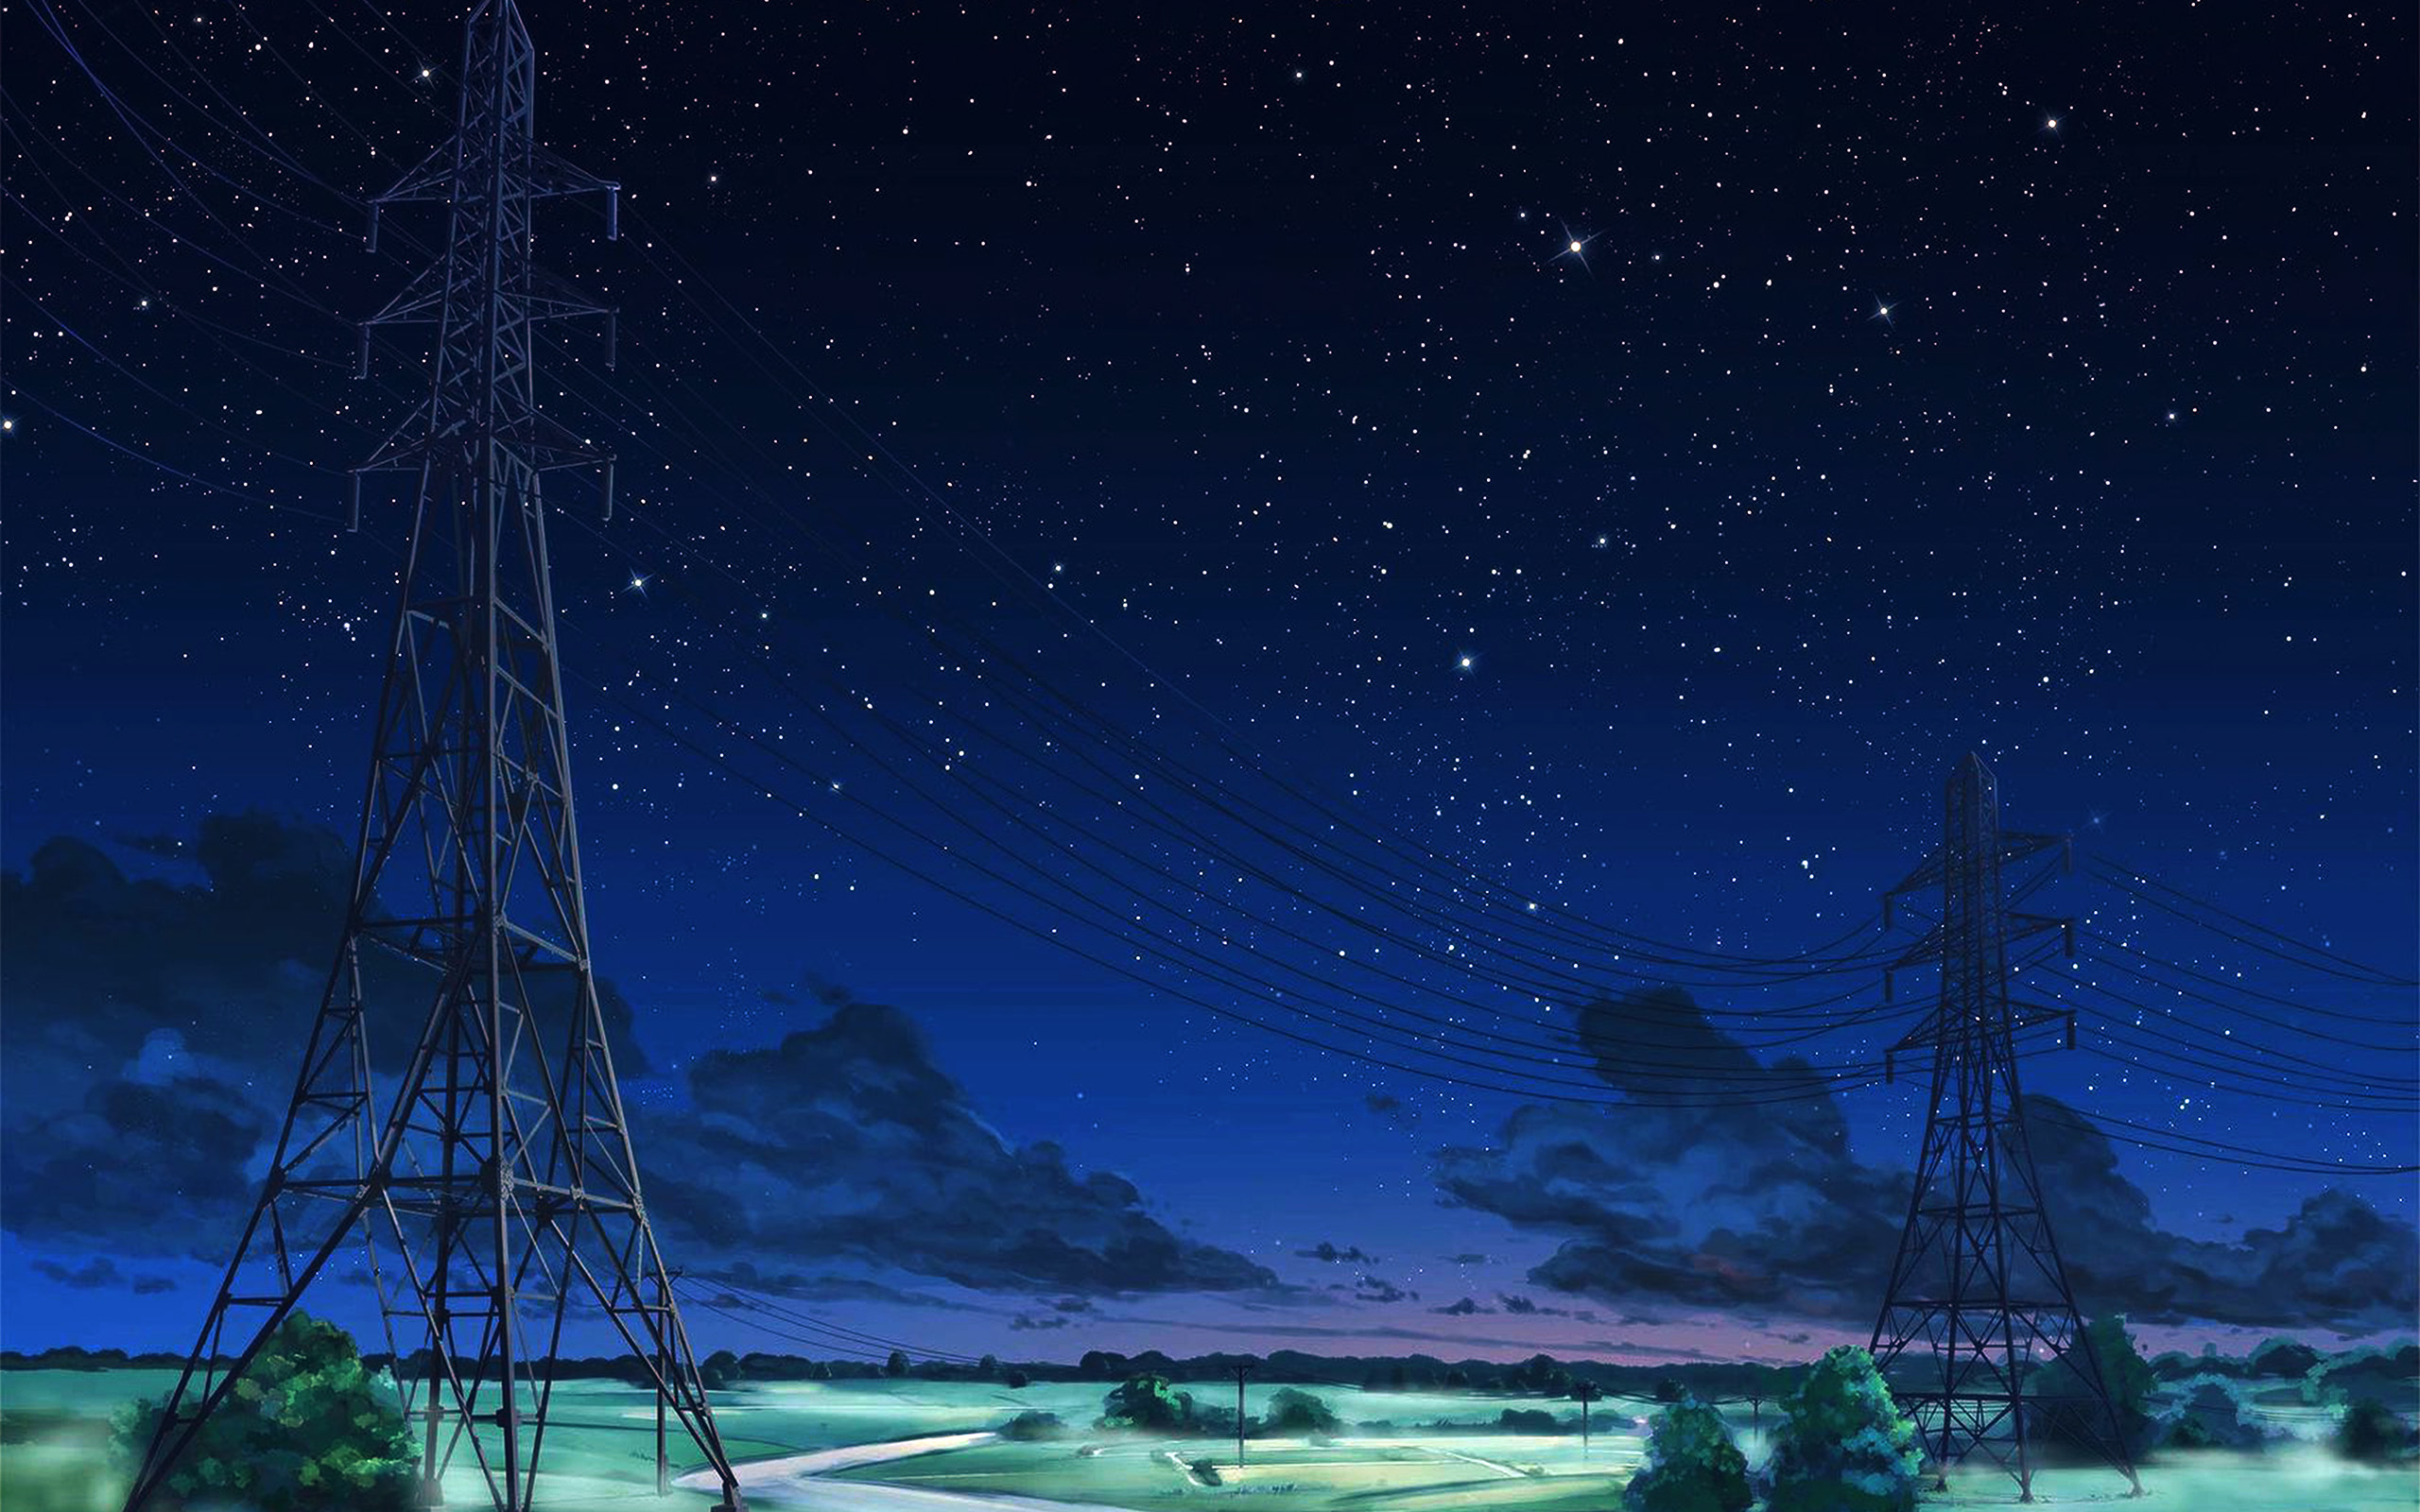 Aw16 arseniy chebynkin night sky star blue illustration - Blue anime wallpaper ...